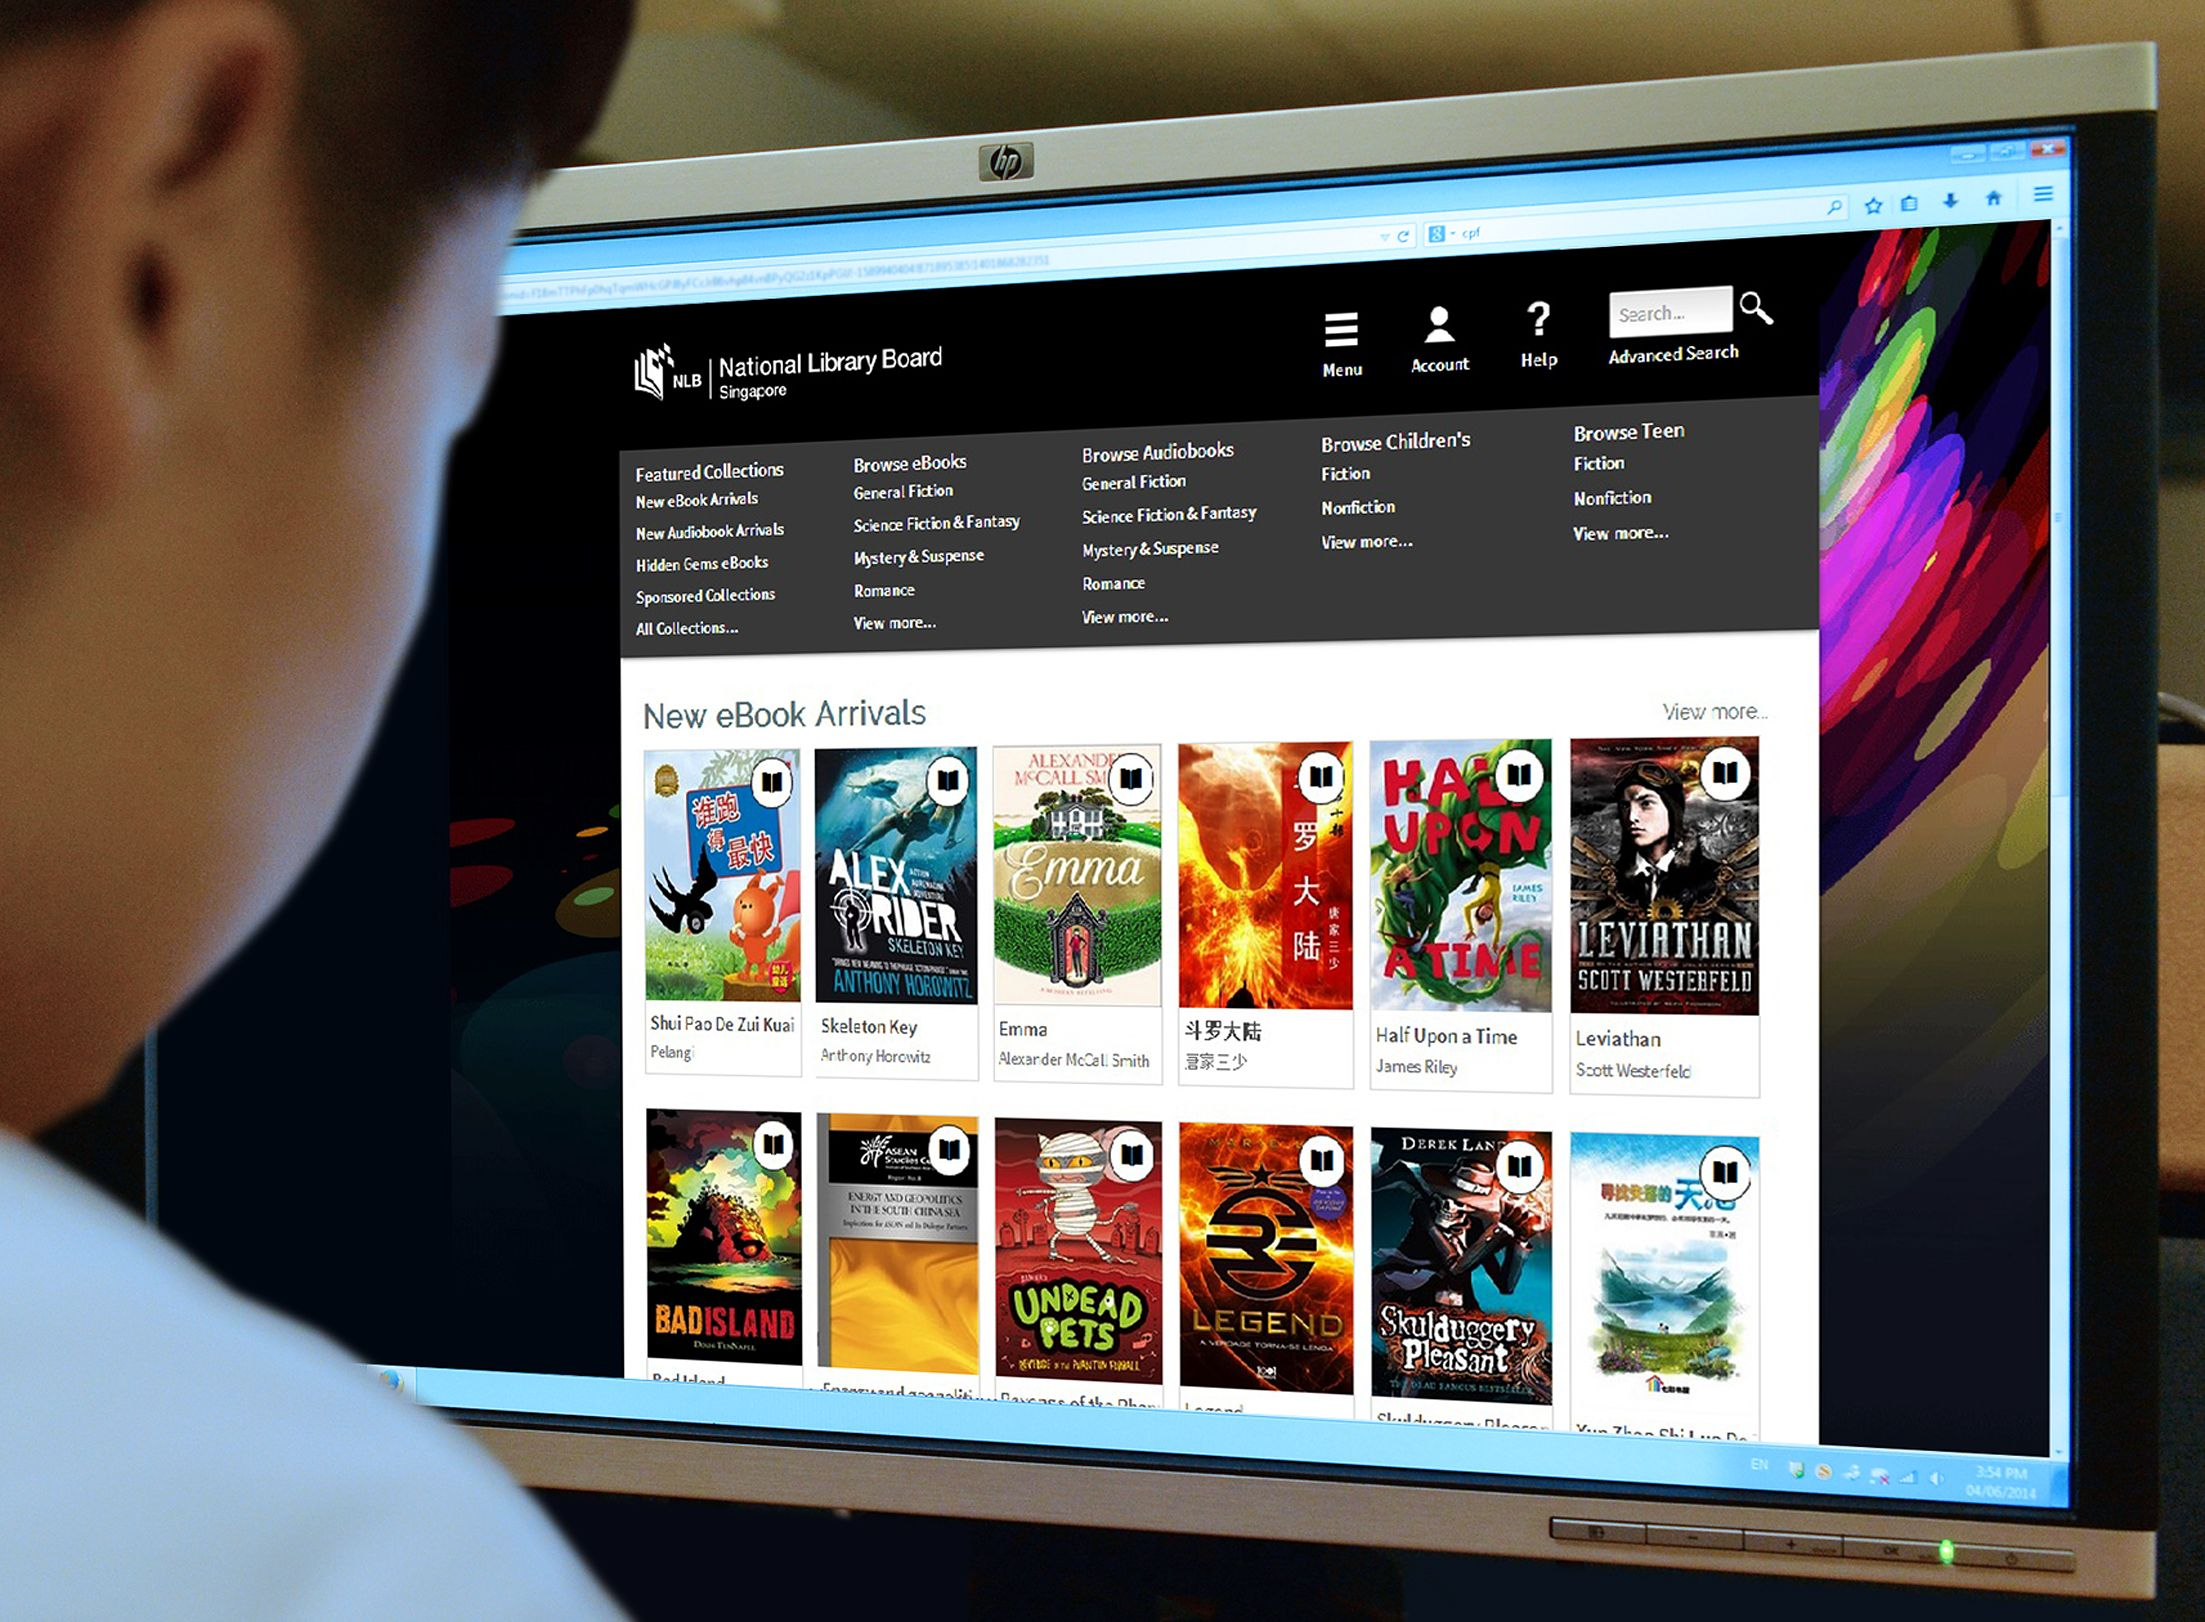 Page-turner: After sizzling growth, e-book sales cool